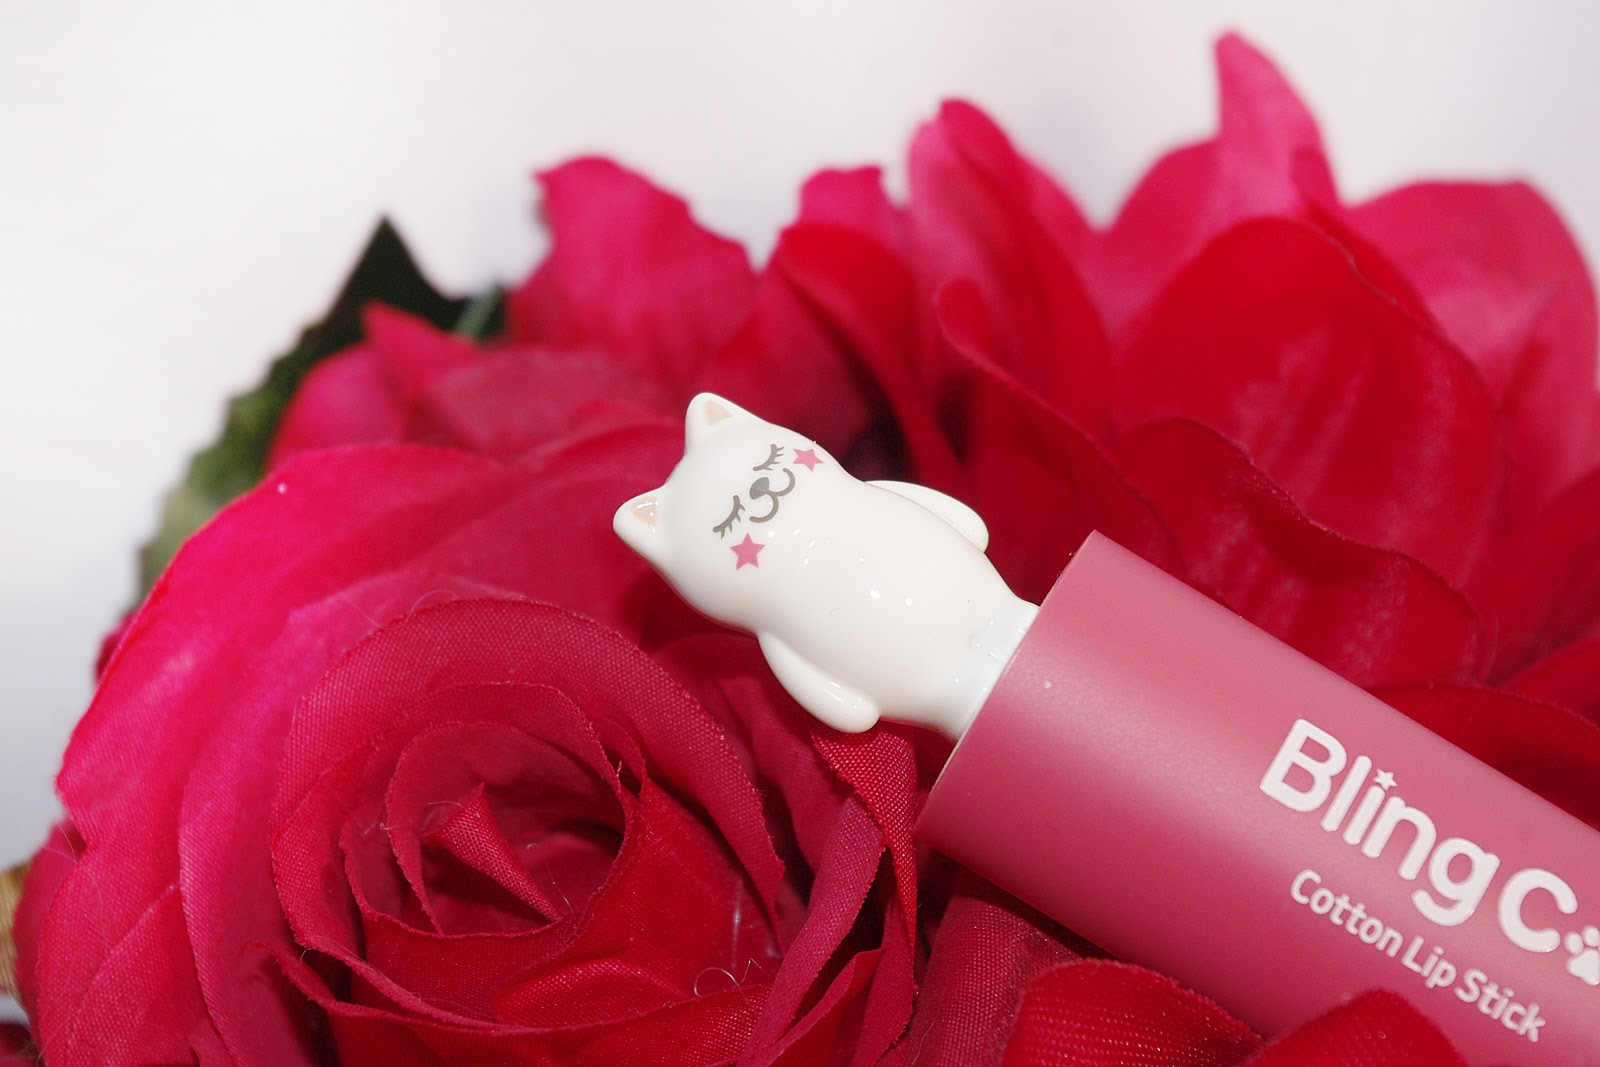 TonyMoly Bling Cat Cotton Lipstick 02 Heroine Pink